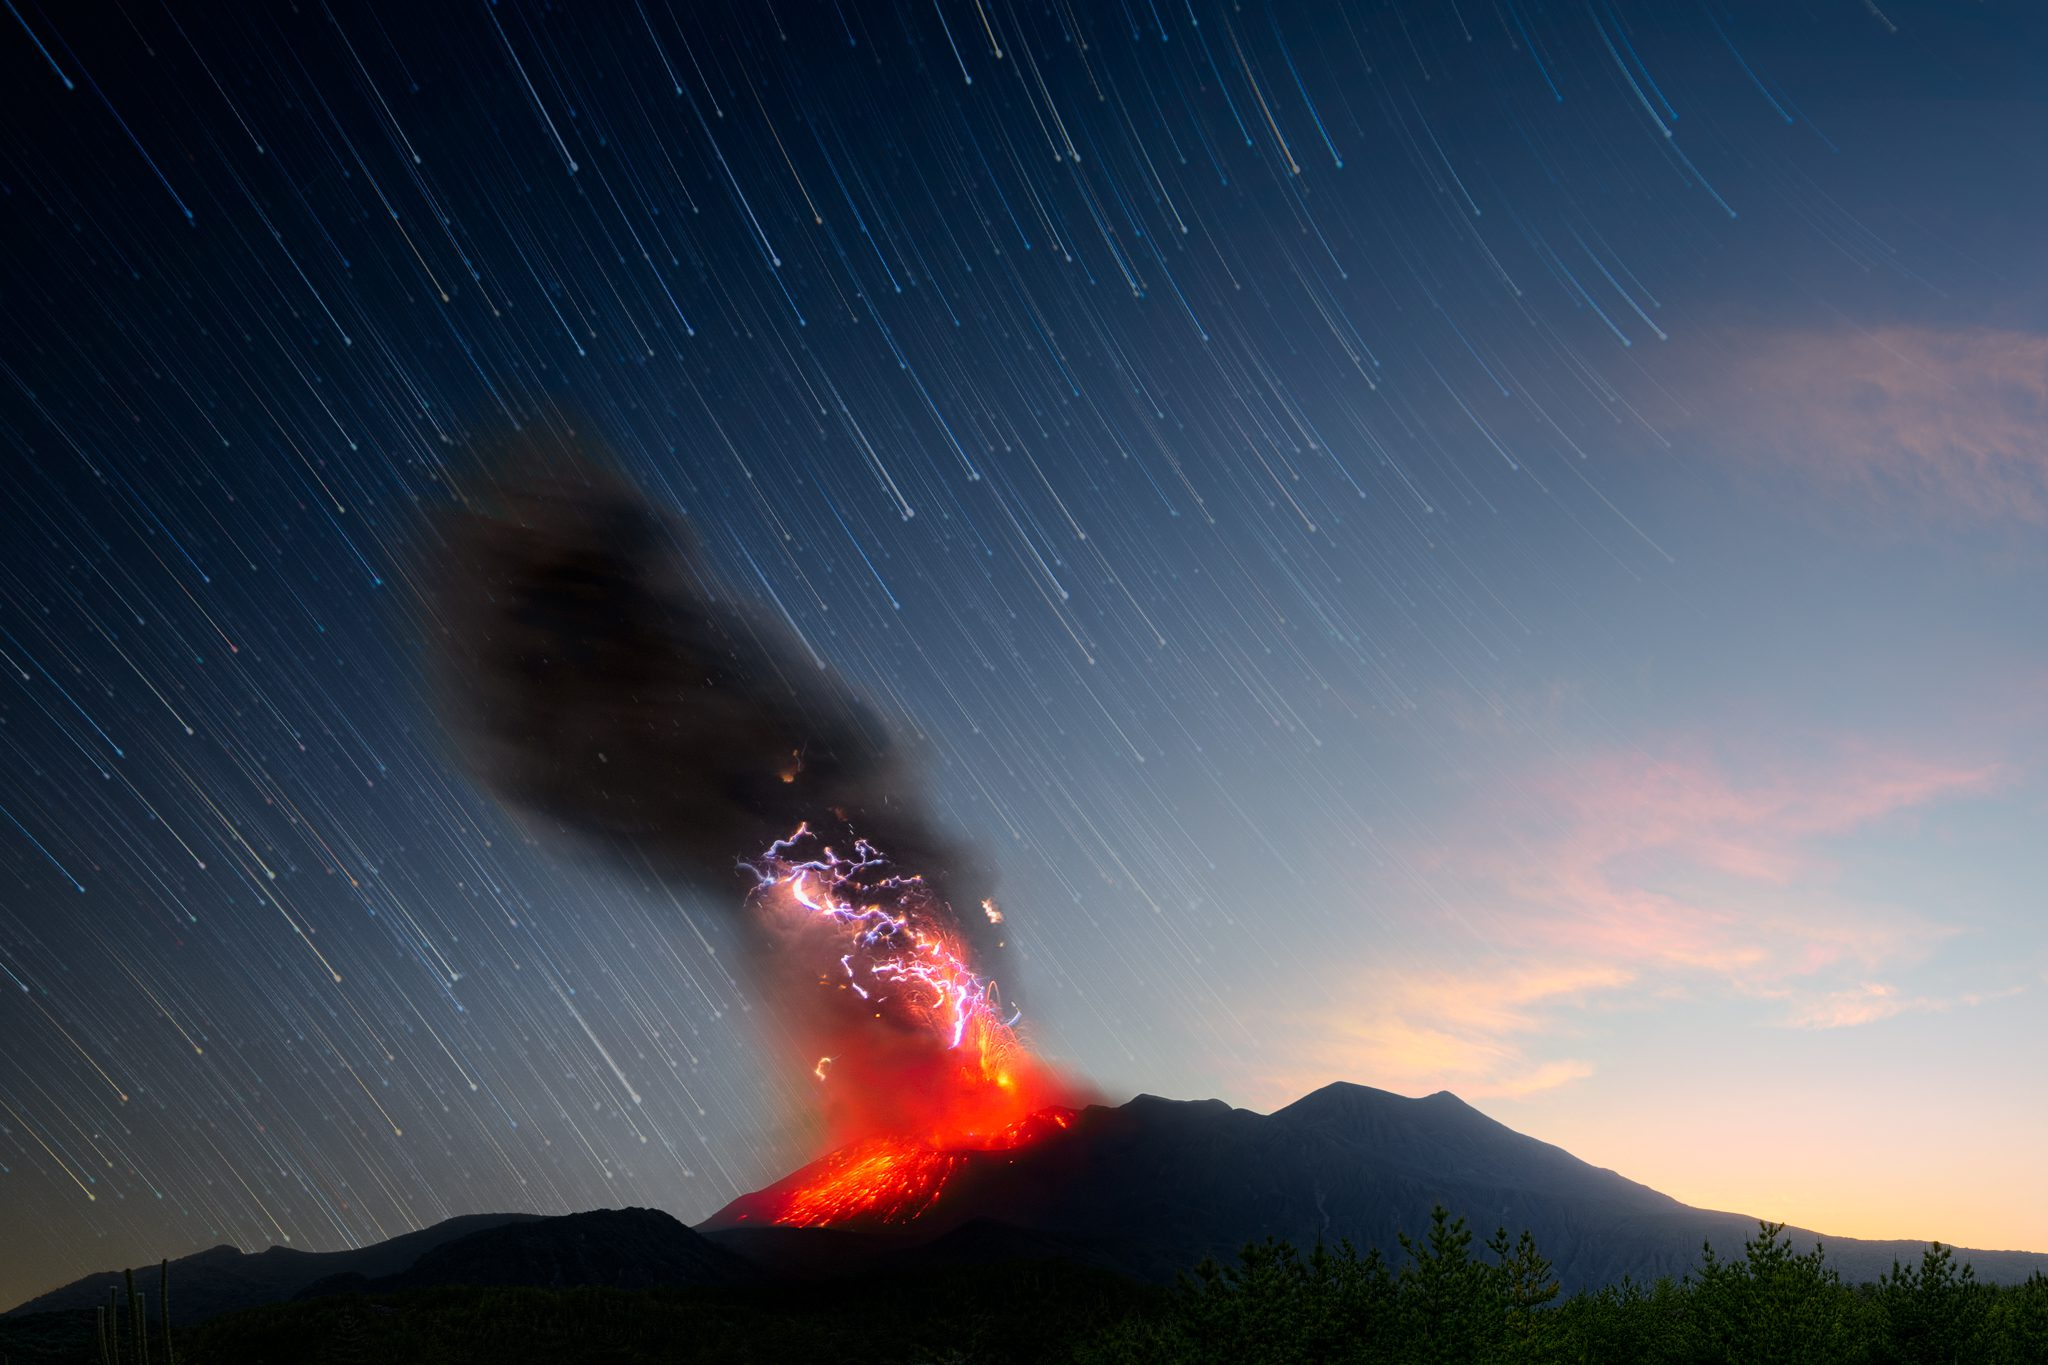 Just as I was finishing with capturing star trail sequence, the ground shook and nature provided me with one of the most majestic displays I have ever seen. To see an explosive strombolian eruption in person has been my wish for decades. I knew I had the best chance so far during our Japan adventure since Sakurajima is the most active volcano in the world. Nature is so majestic I can't even begin to describe how I felt watching a whole mountain on fire and sky covered with static lightning.